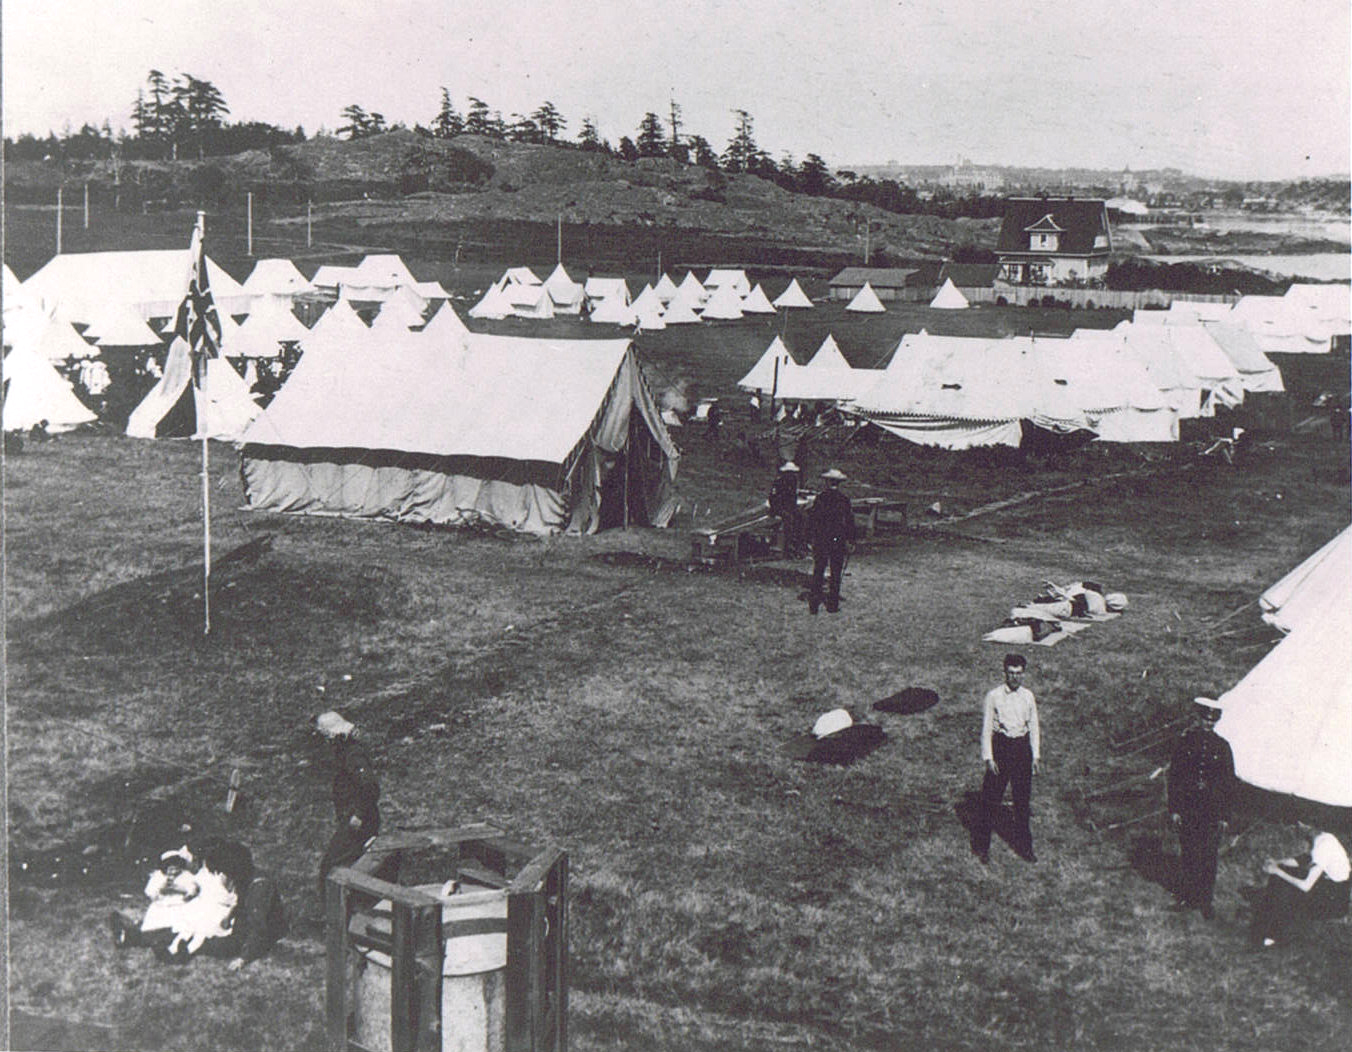 The 5th Regiment in Camp